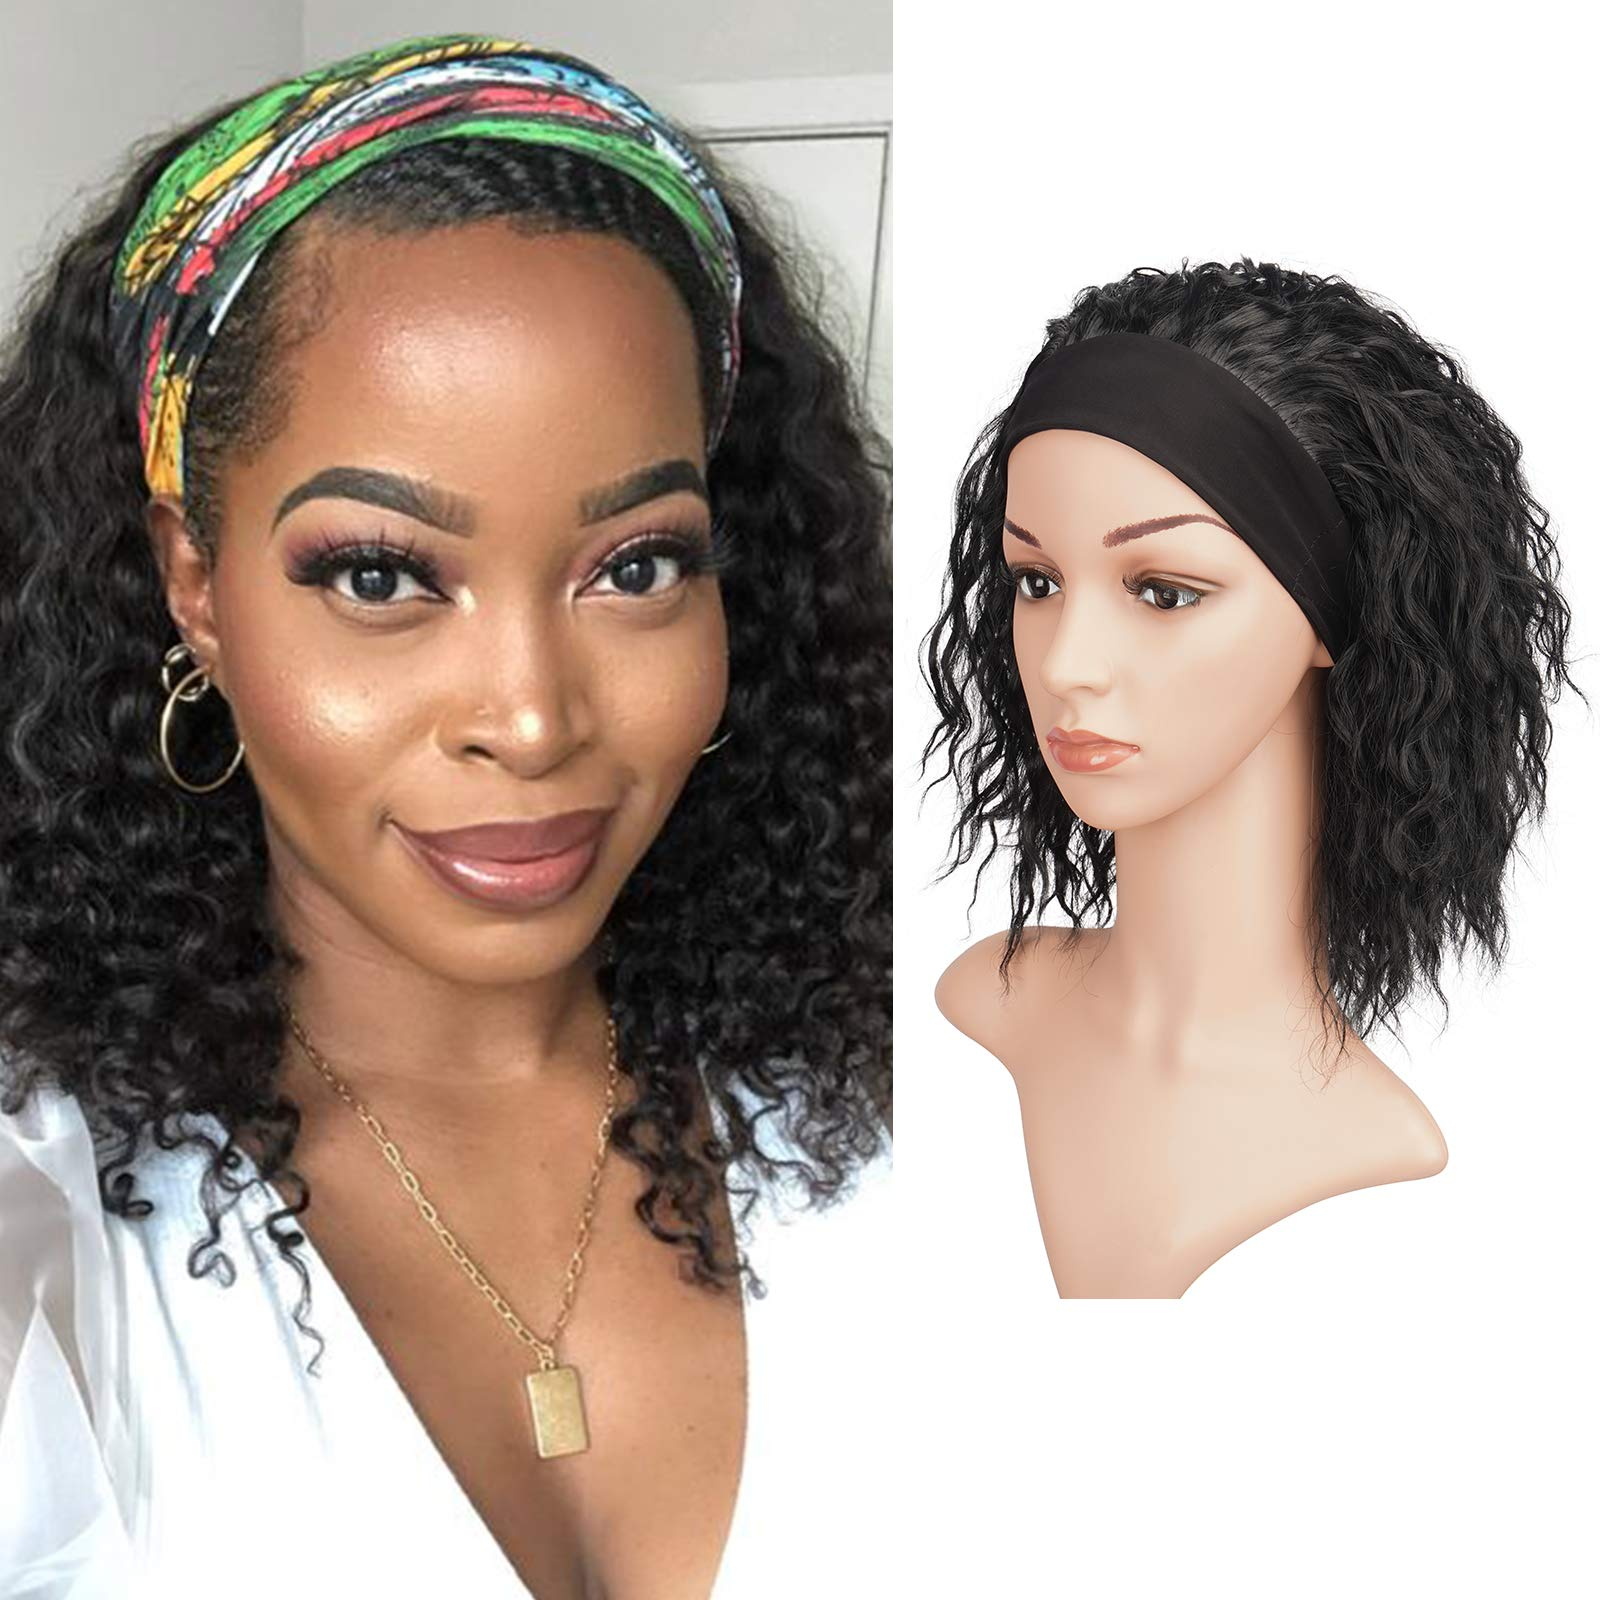 Headband Wigs for Black Women, BARSDAR Curly Synthetic Hair Wigs 16 inch Fully None Lace Front Hair Wig with Black Headband Natural Color Yaki Hair Easy to Wear(Off Black)